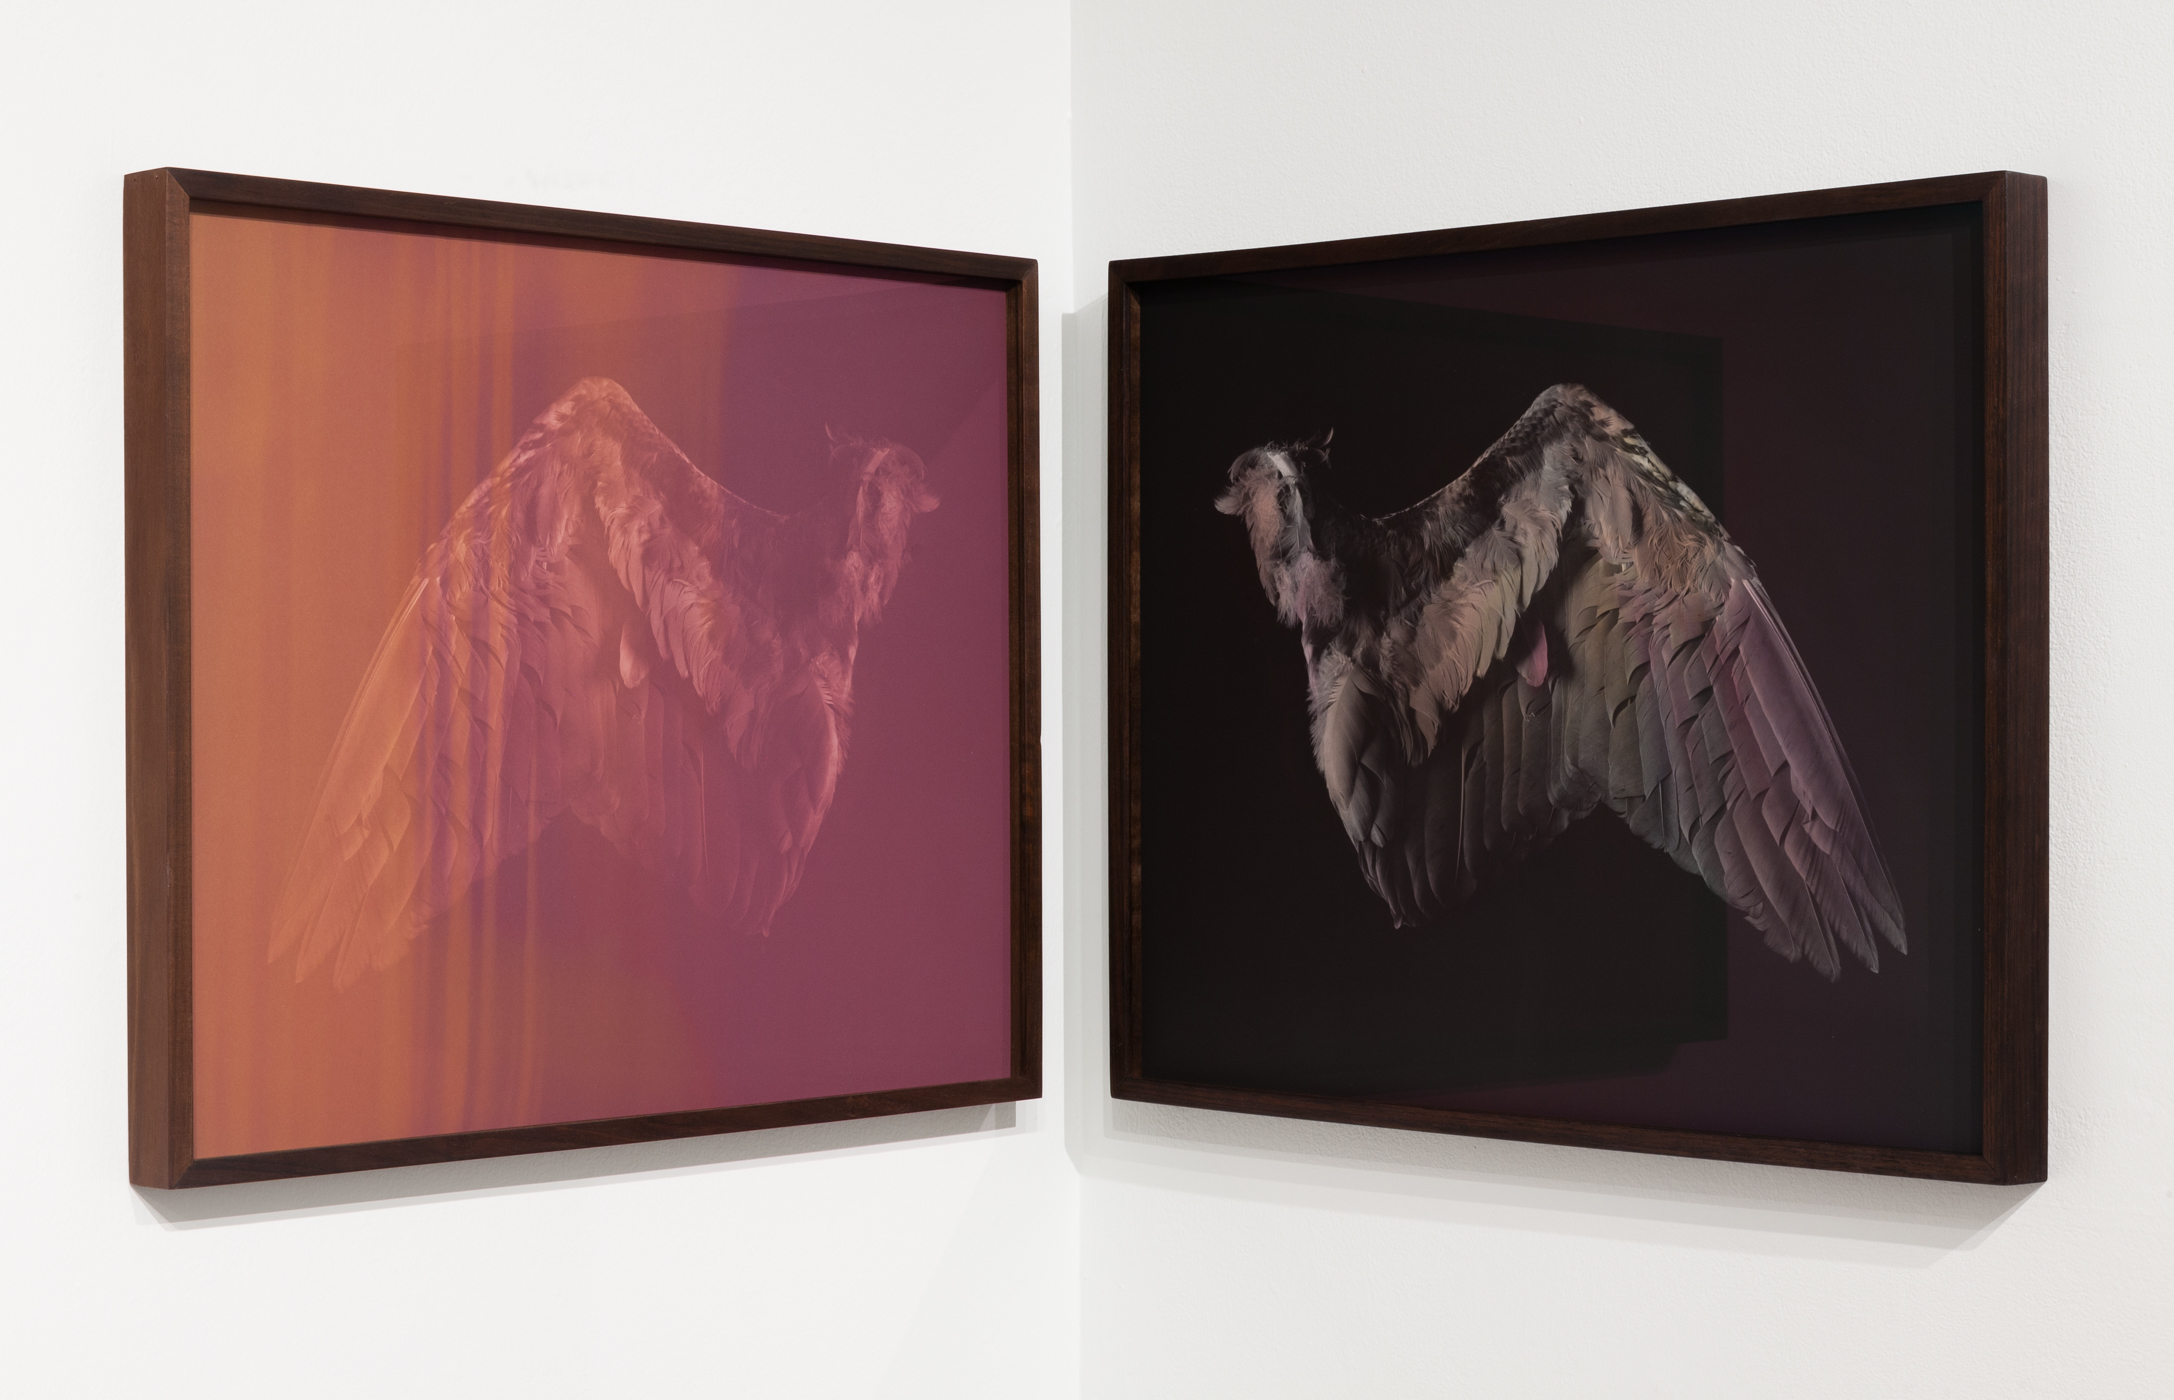 Wing   (diptych), 2017 Left: Anthotype (faded lily, daisy, elderberry dyes on paper) Right: Silver gelatin print colored with lily, daisy, elderberry dyes 22 x 27 inches each Ed: 2 + 1AP